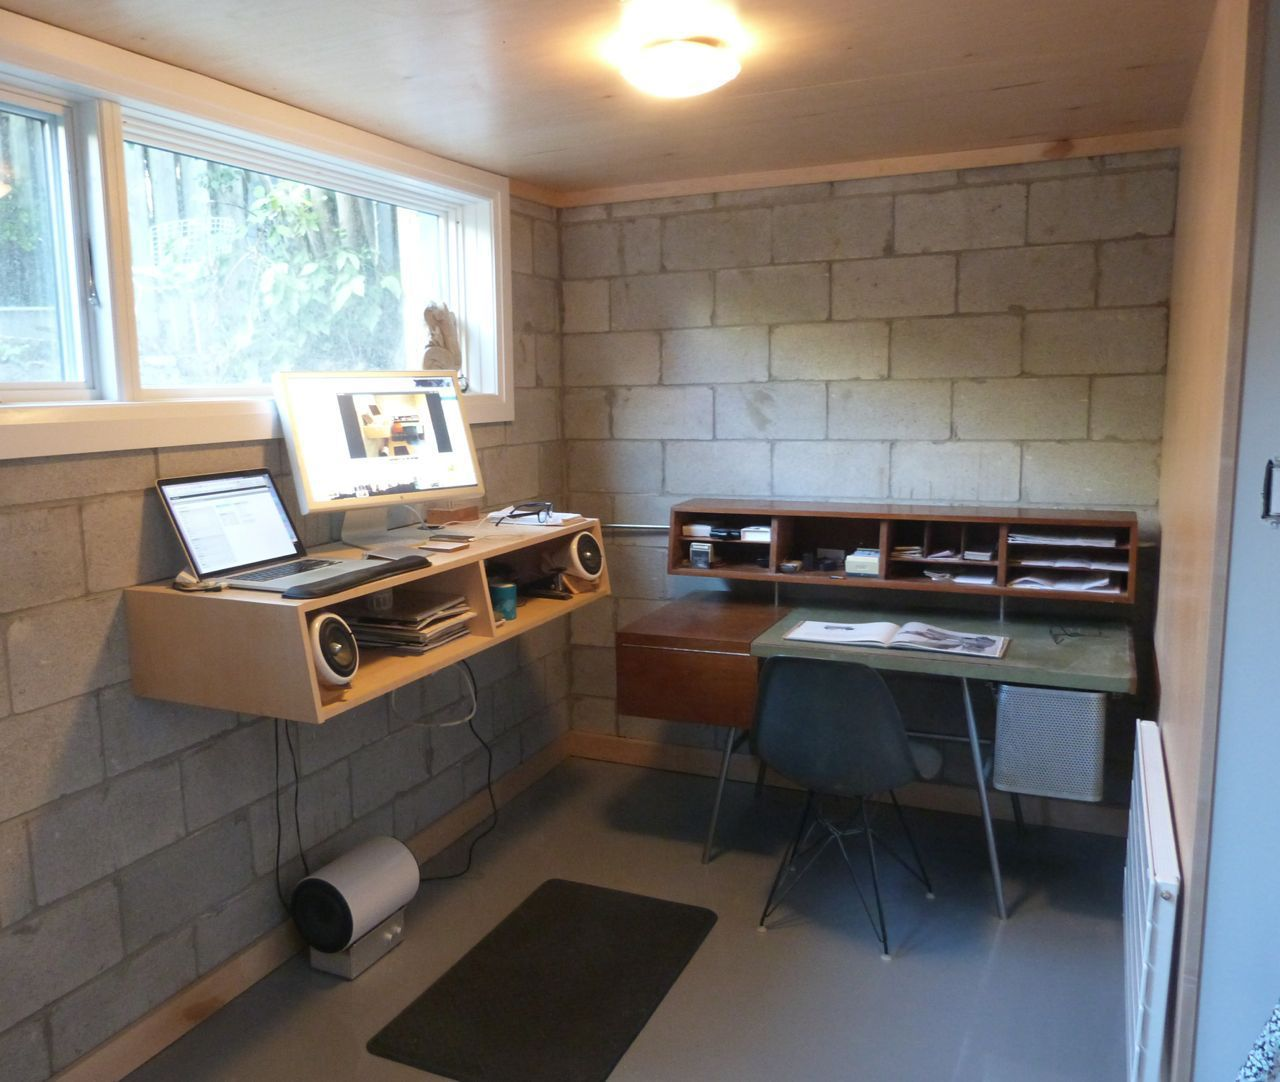 An office setup with a desk and storage in a small cinder block walled room